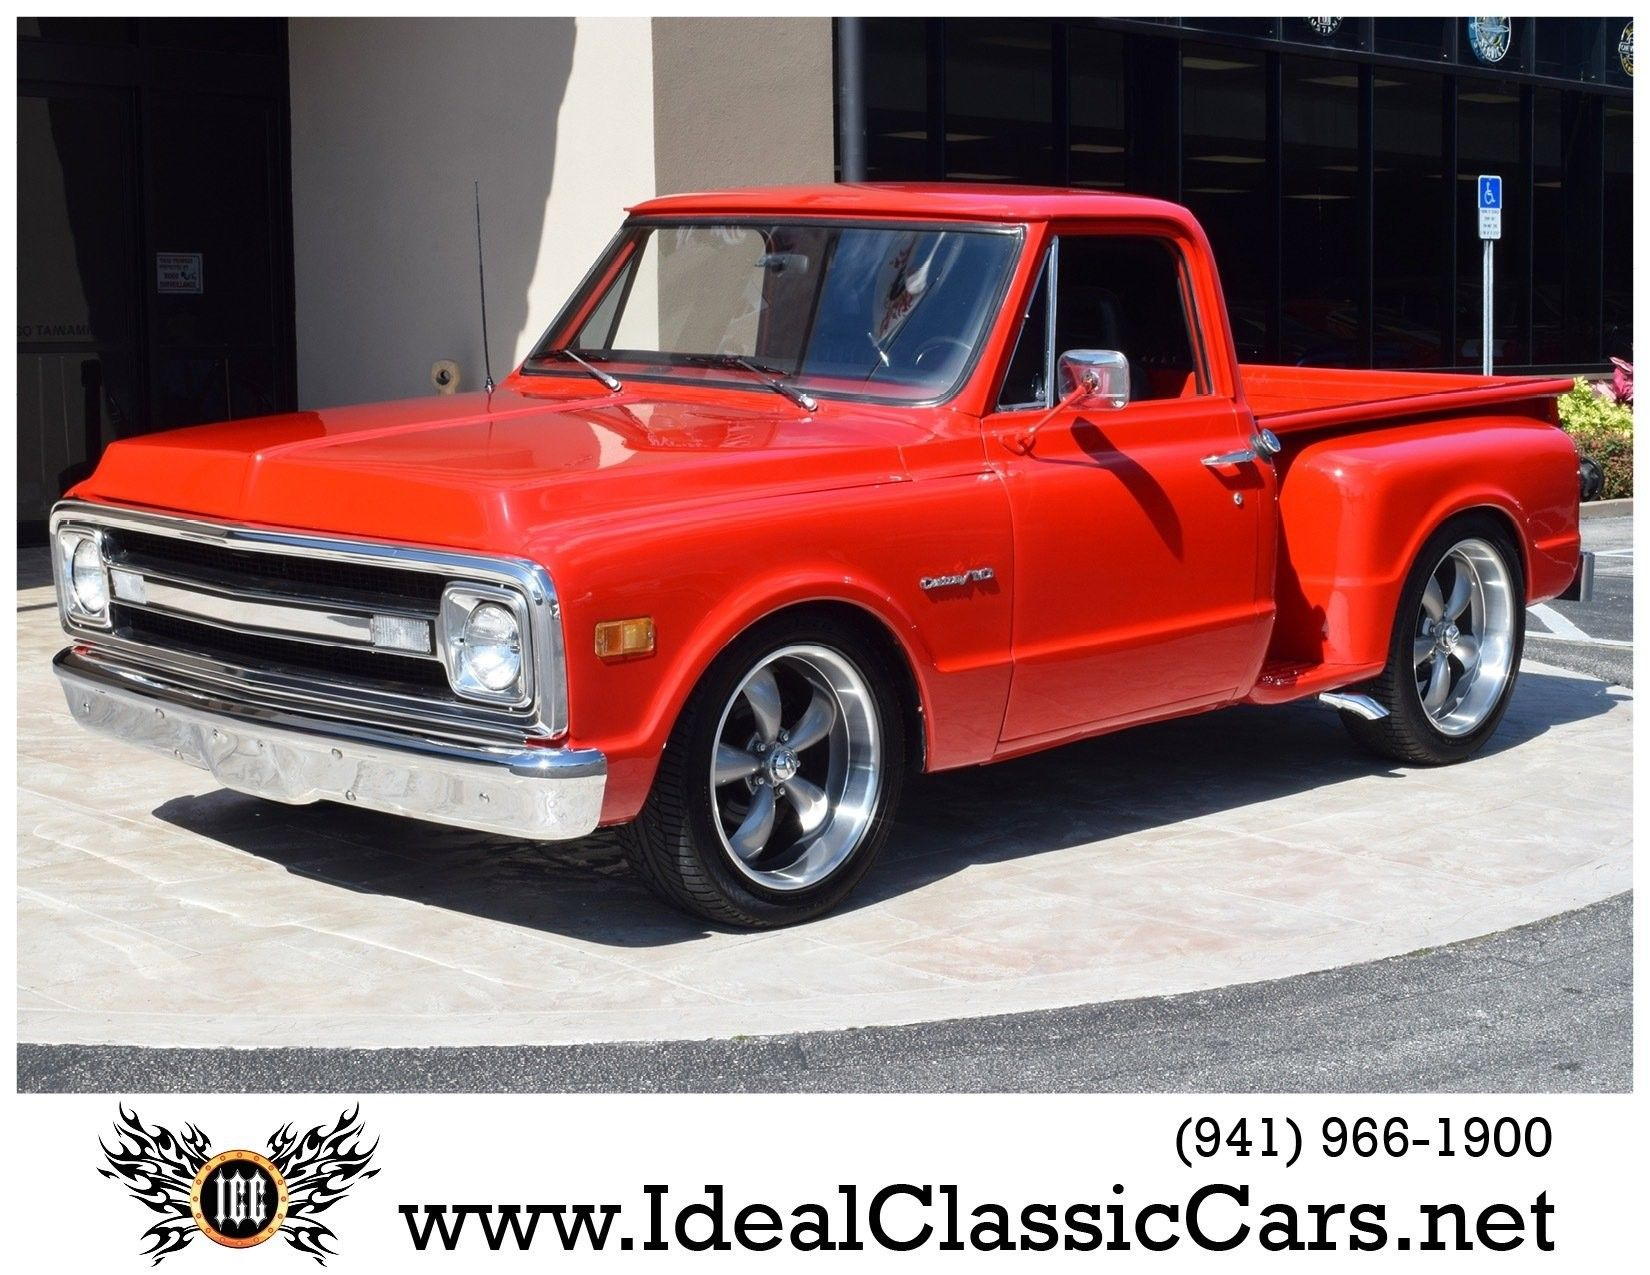 1970 Chevrolet Custom C10 Stepside Pickup Classic trucks